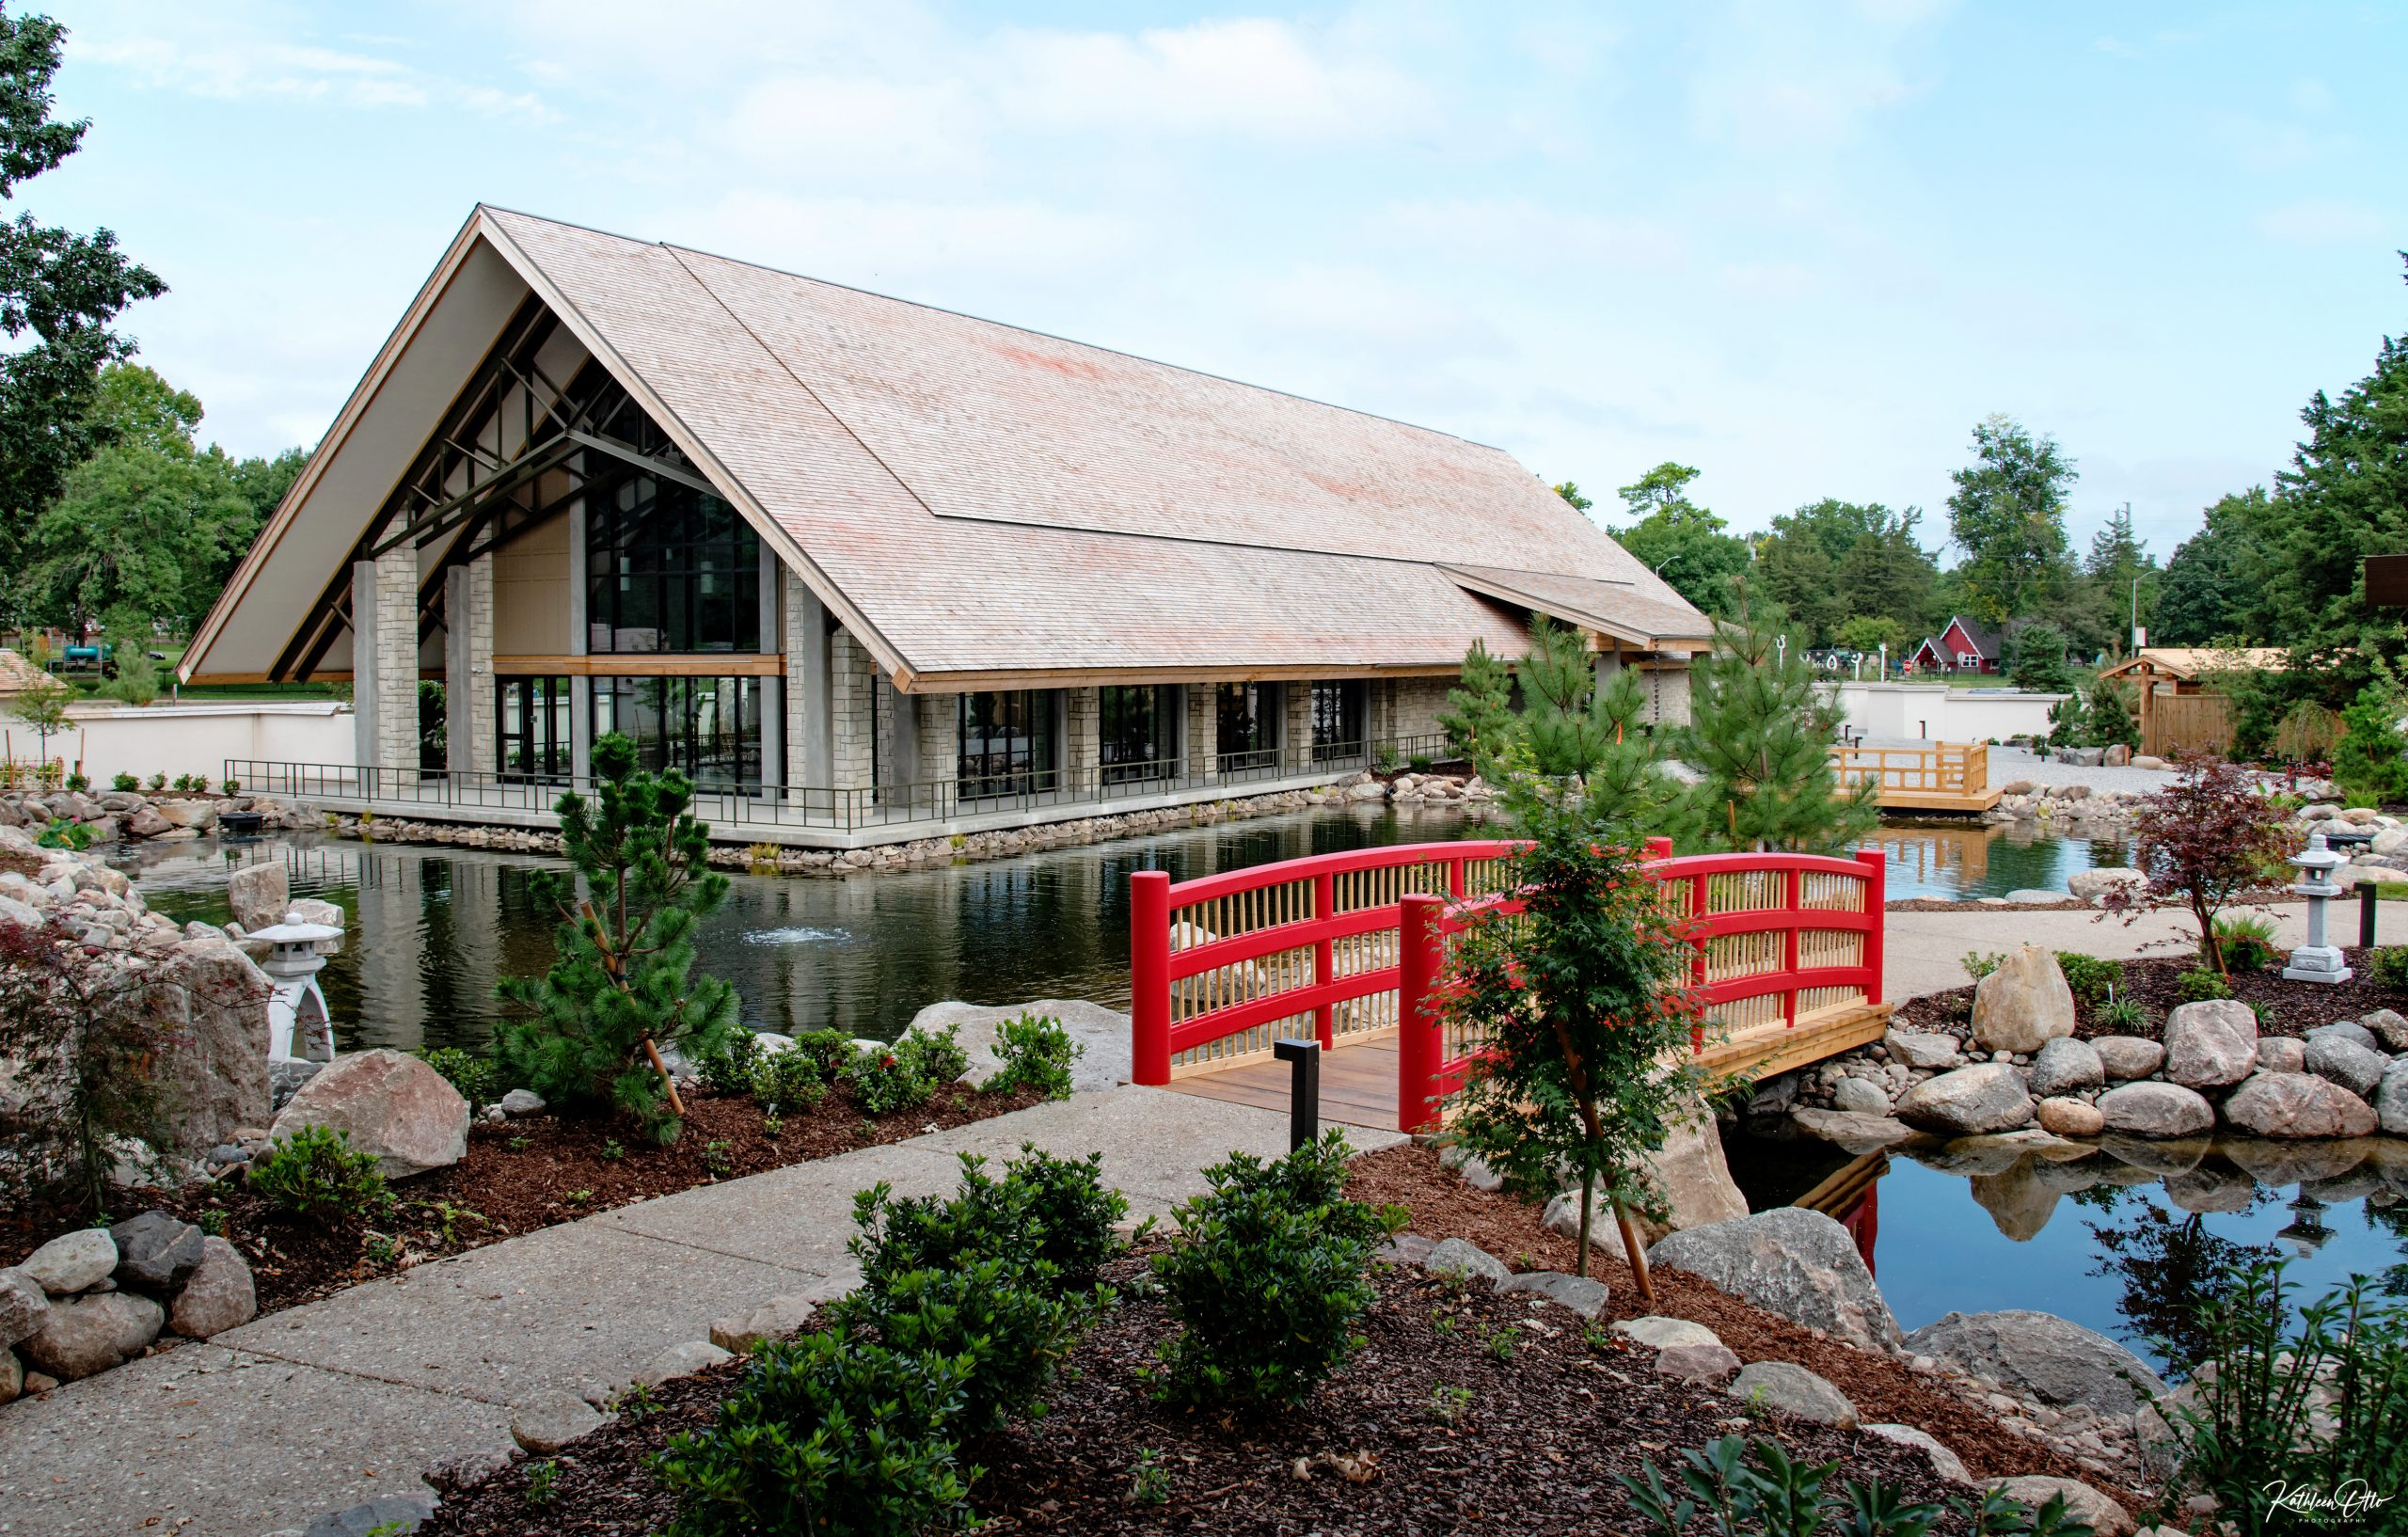 The Kay McFarland Japanese Garden and Venue